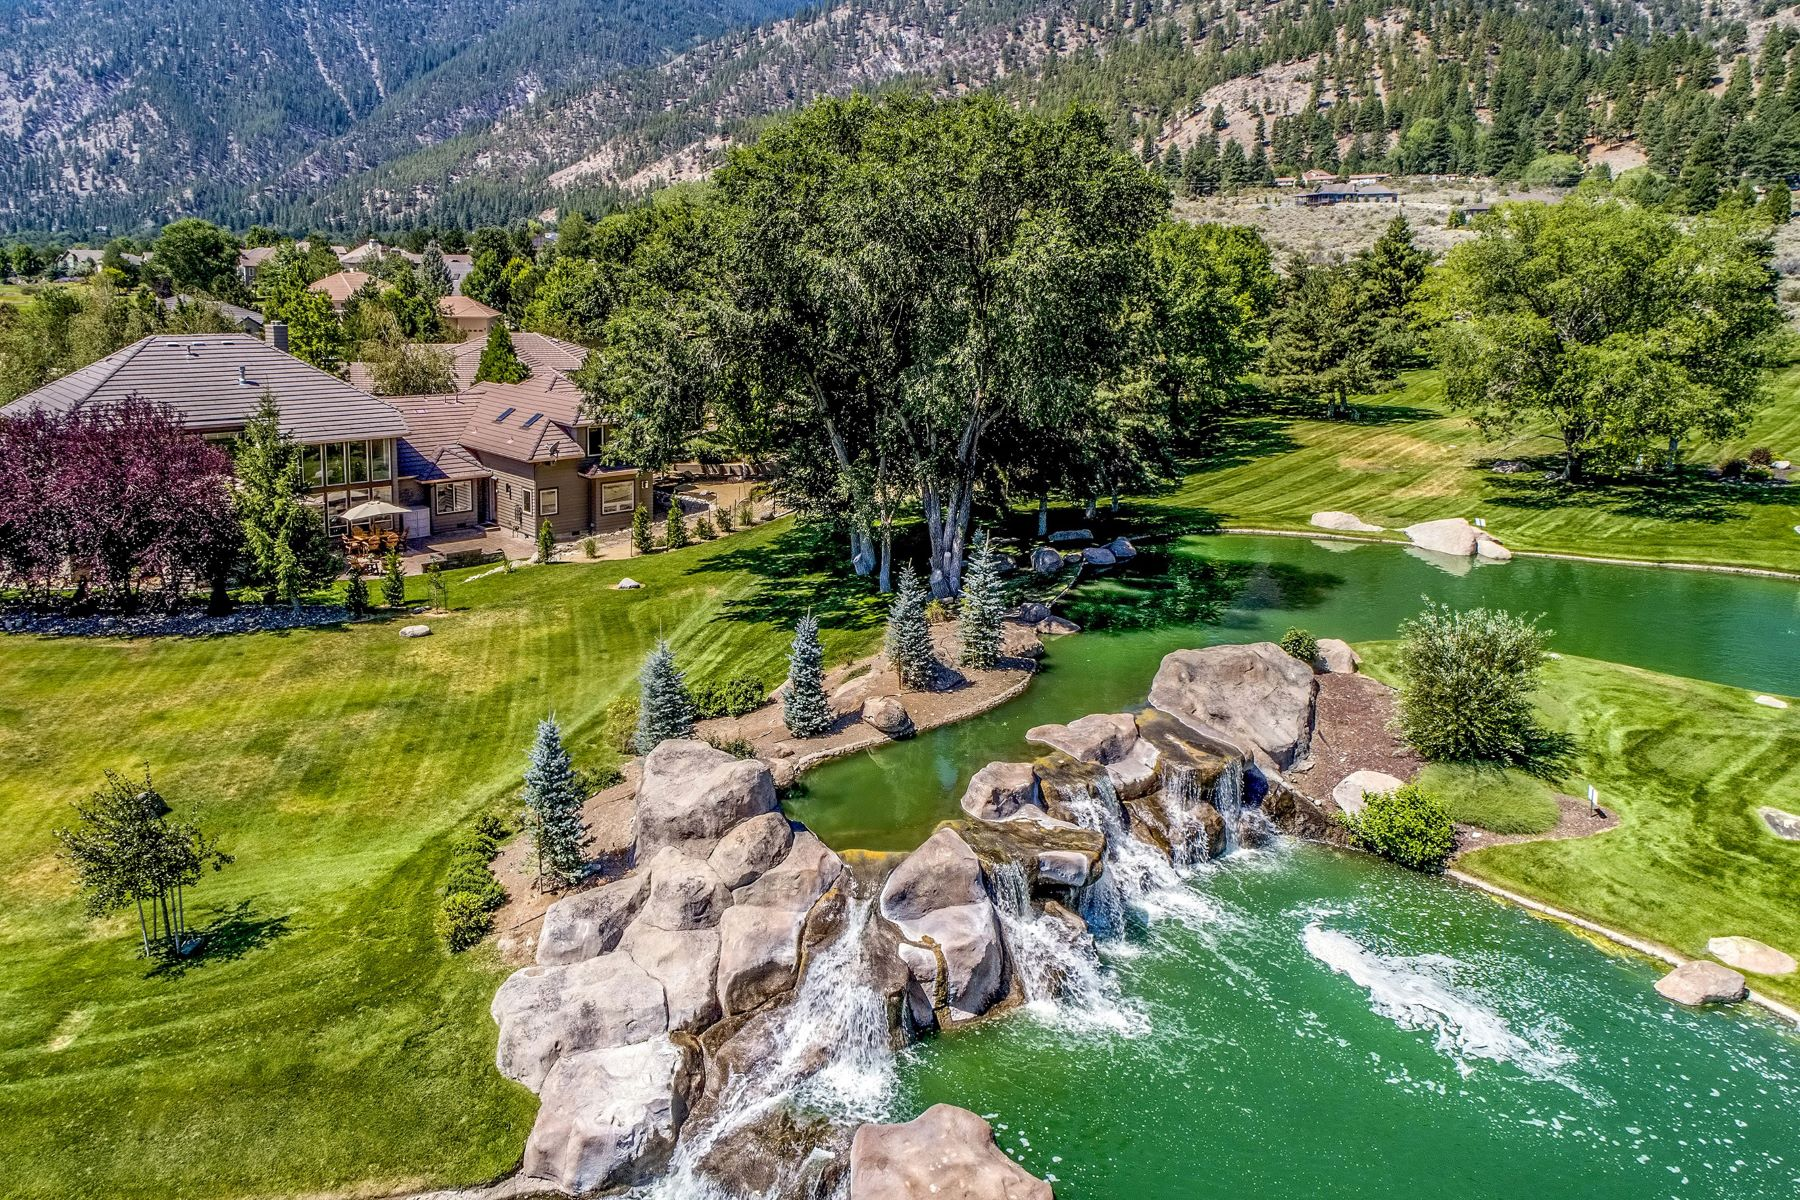 Single Family Homes for Active at Genoa Lakes Golf Course 2466 Genoa Highlands Drive Genoa, Nevada 89411 United States